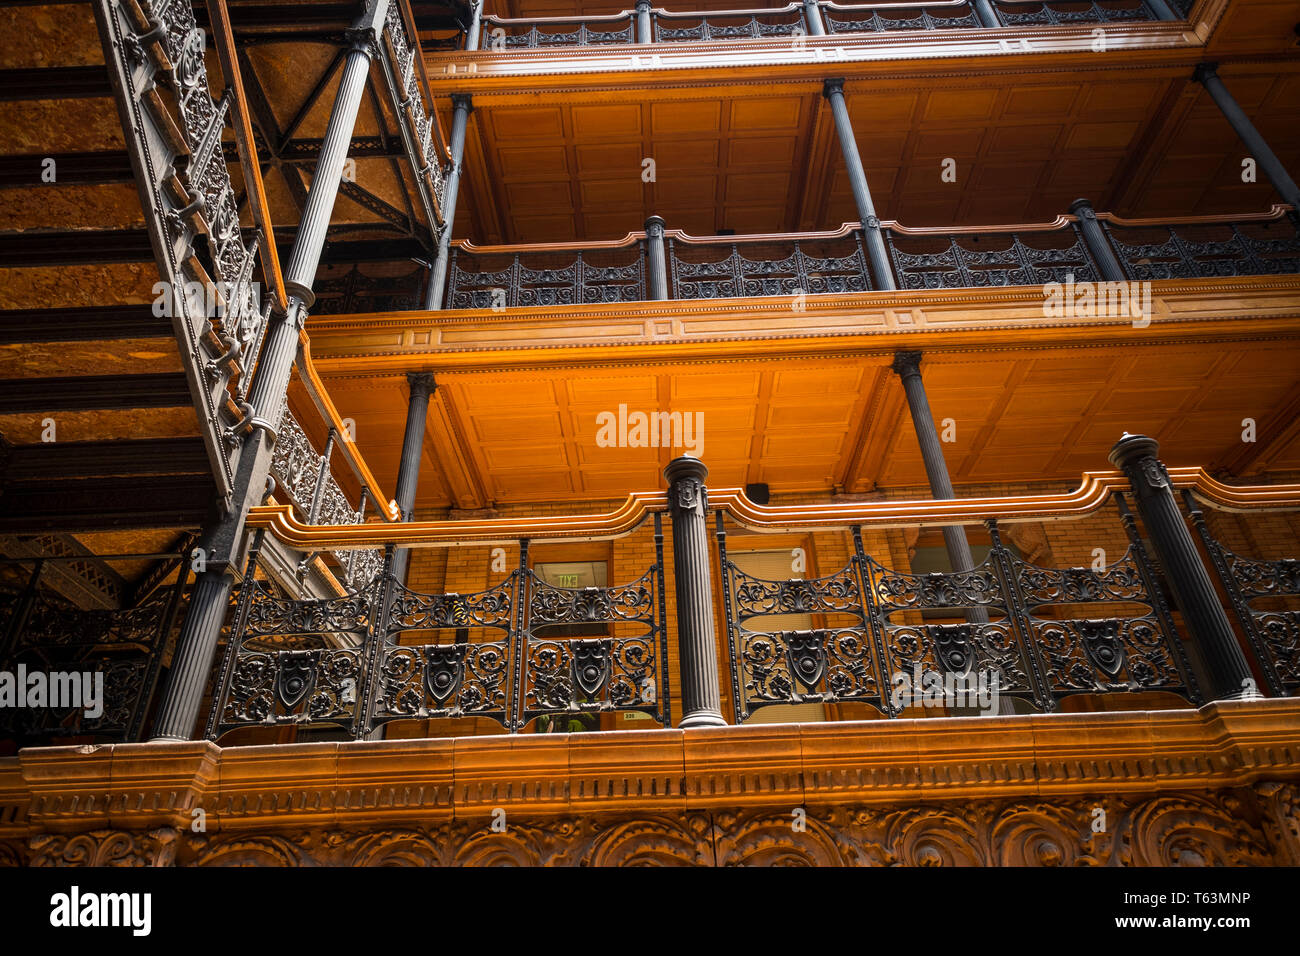 Inside iconic Bradbury Building, part of Blade Runner movie locations, in Downtown Los Angeles, California, USA - Stock Image